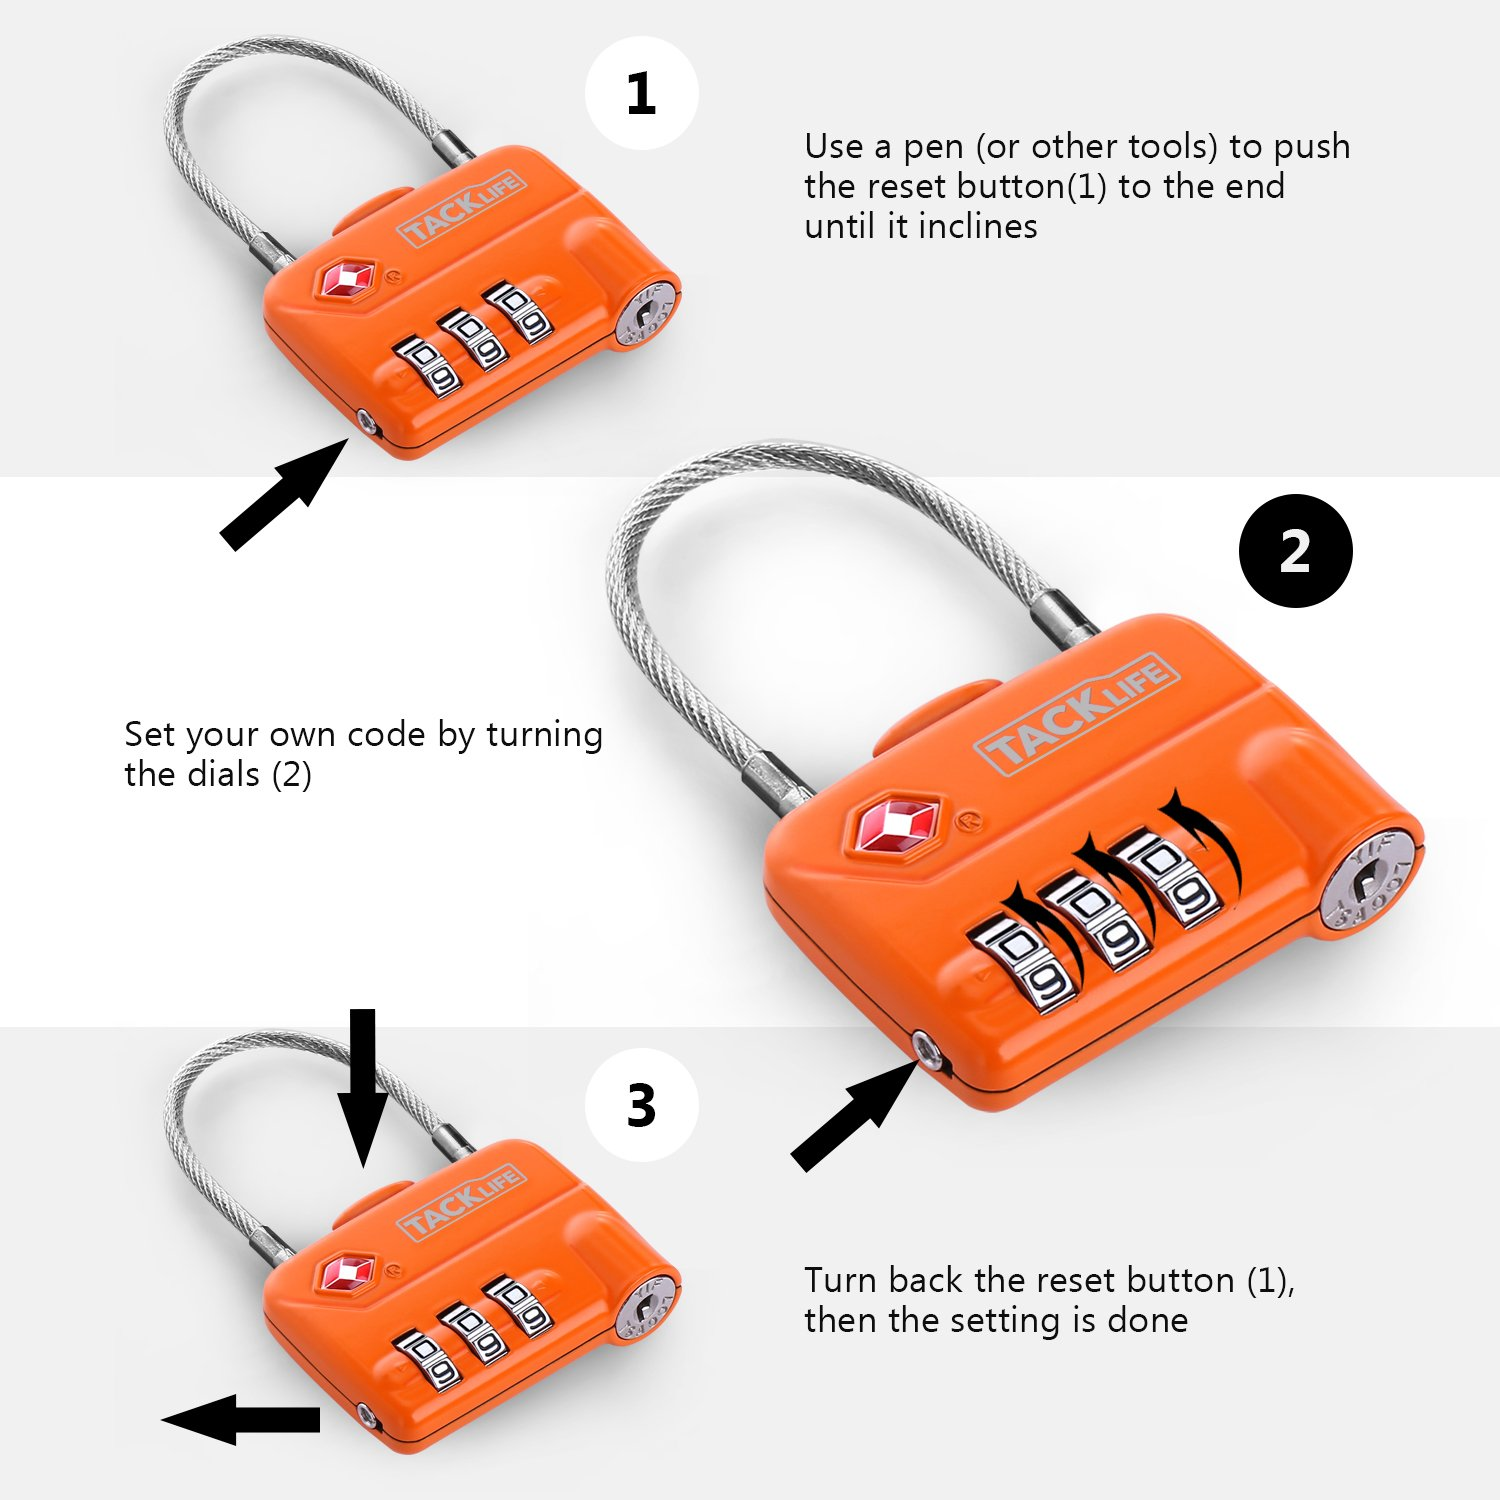 Luggage Locks, TACKLIFE HCL1A Cable Locks, TSA Approved Travel Locks, Flexible Locks, 3Digit Combination Locks for Gym, School, Locker, Outdoor, Fence, Suitcase & Baggage - Orange by TACKLIFE (Image #4)